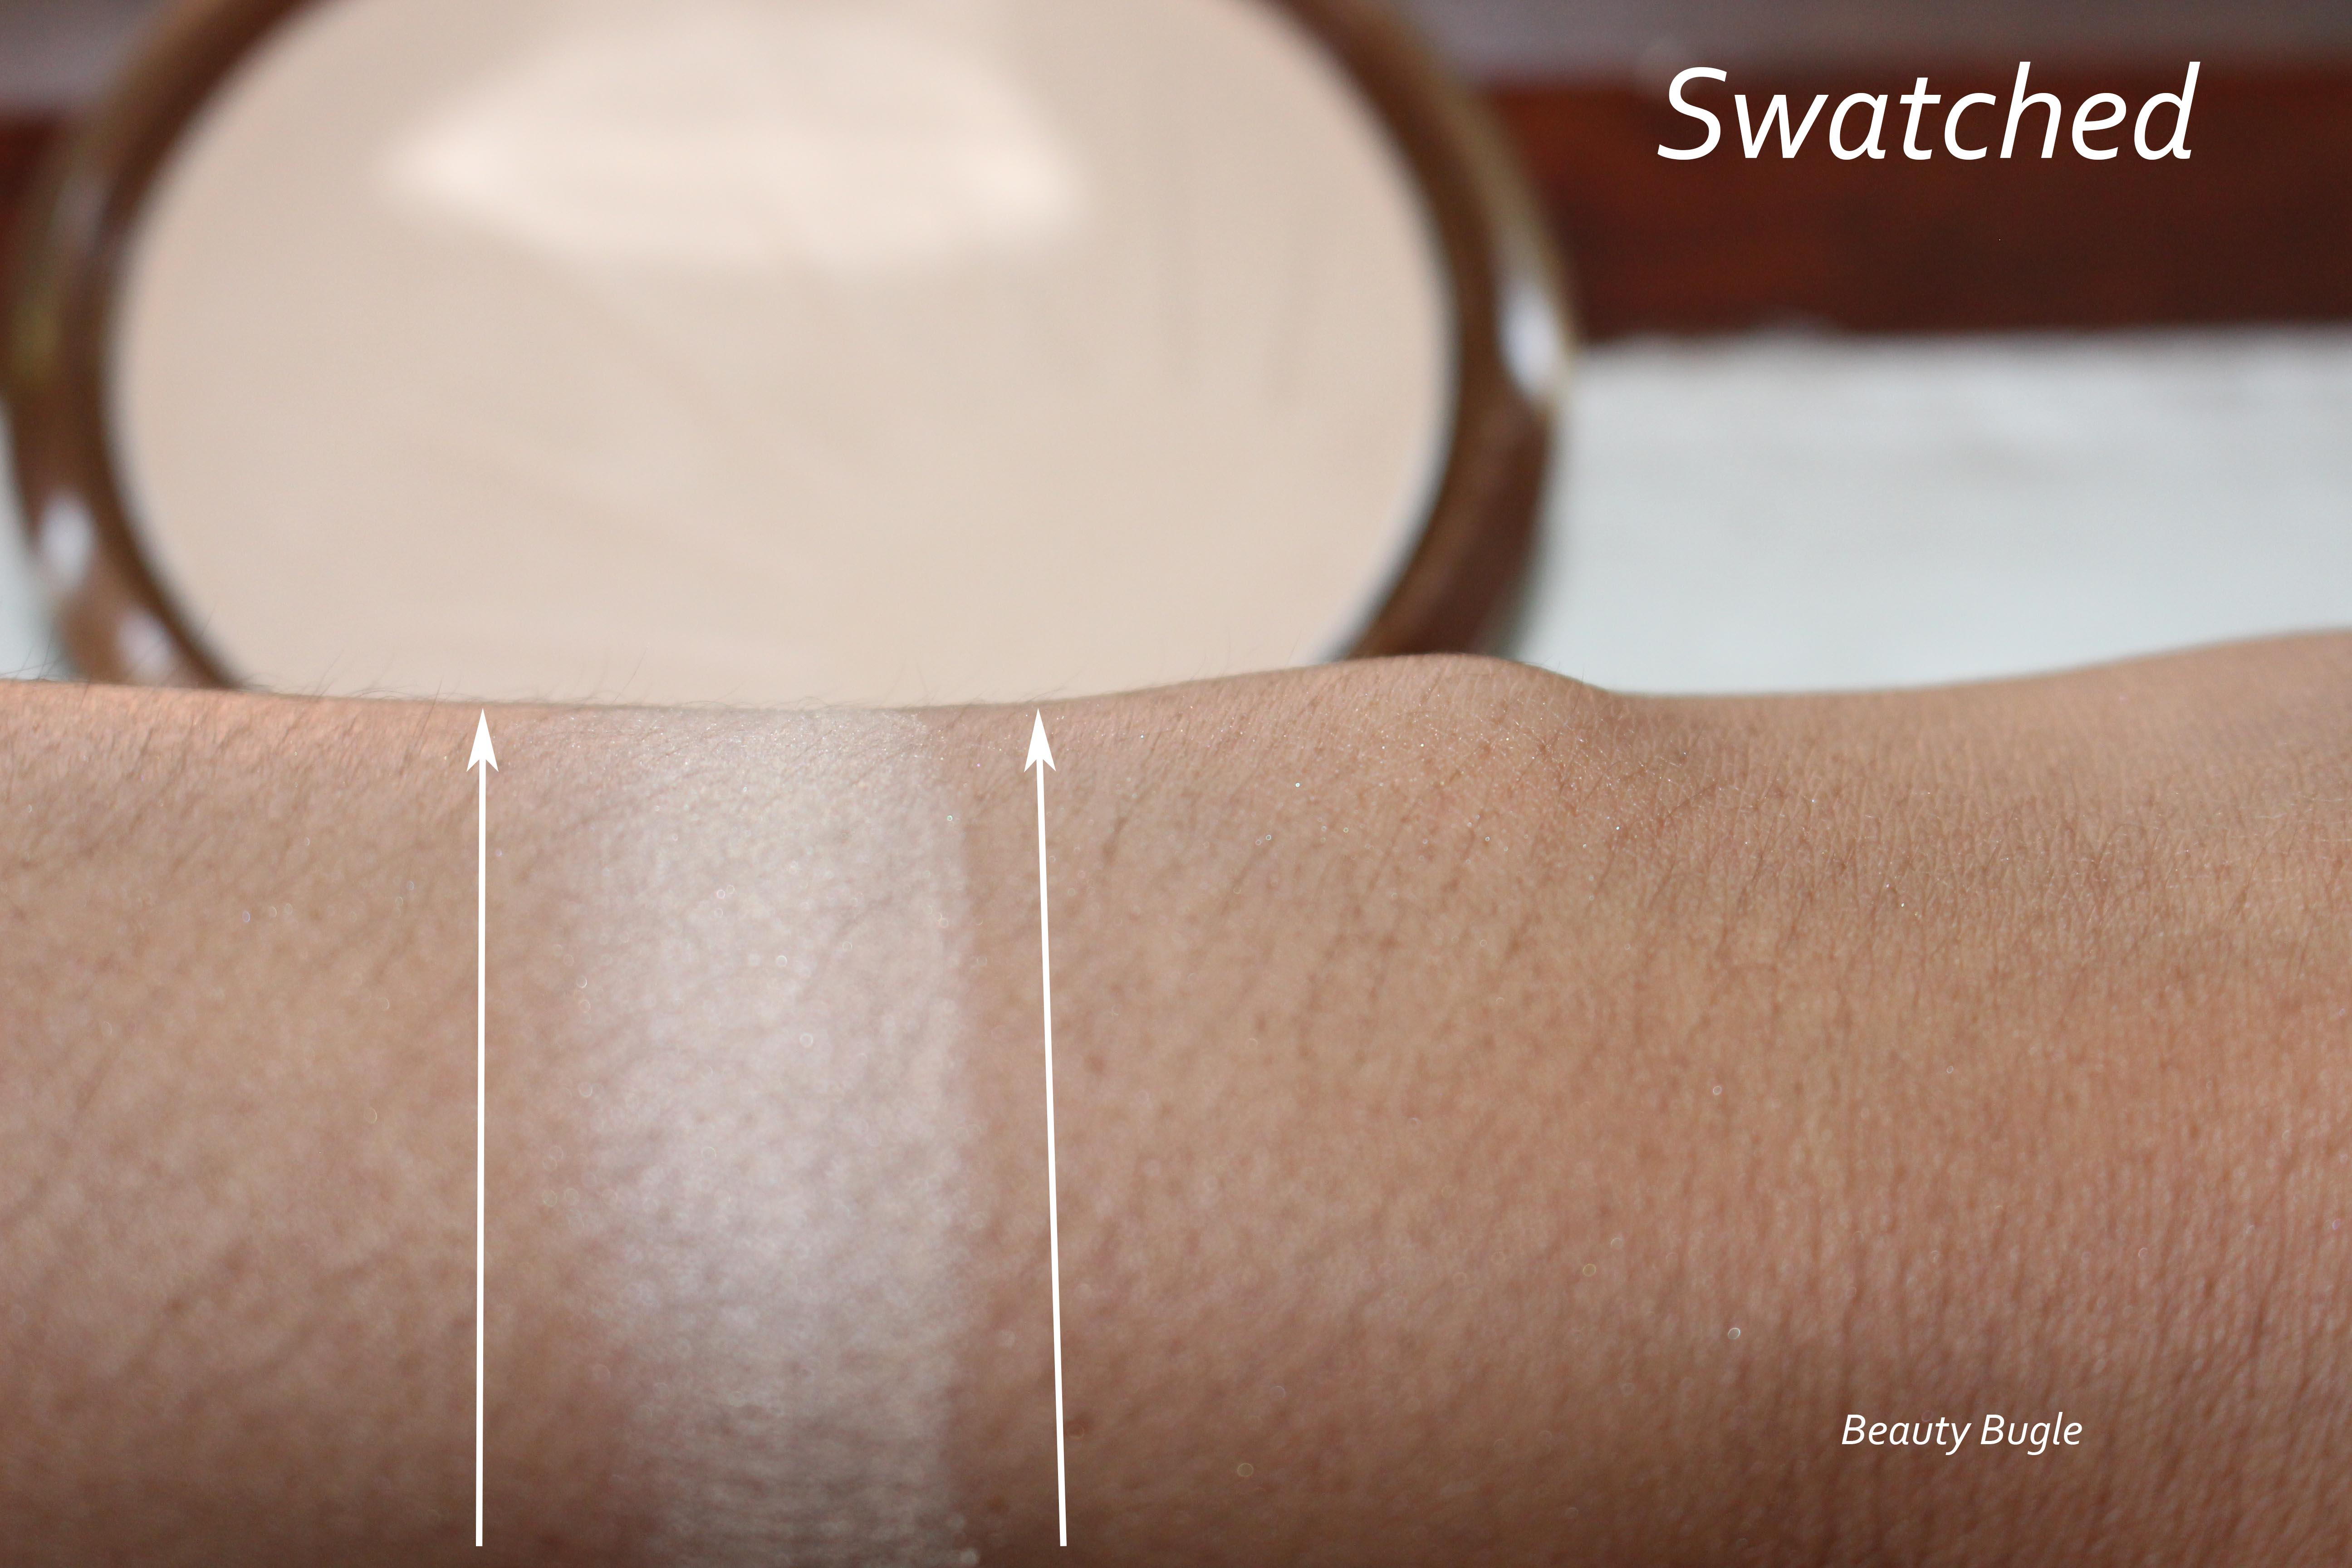 Reserve Your Cabana looks chalky and ashy when swatched.